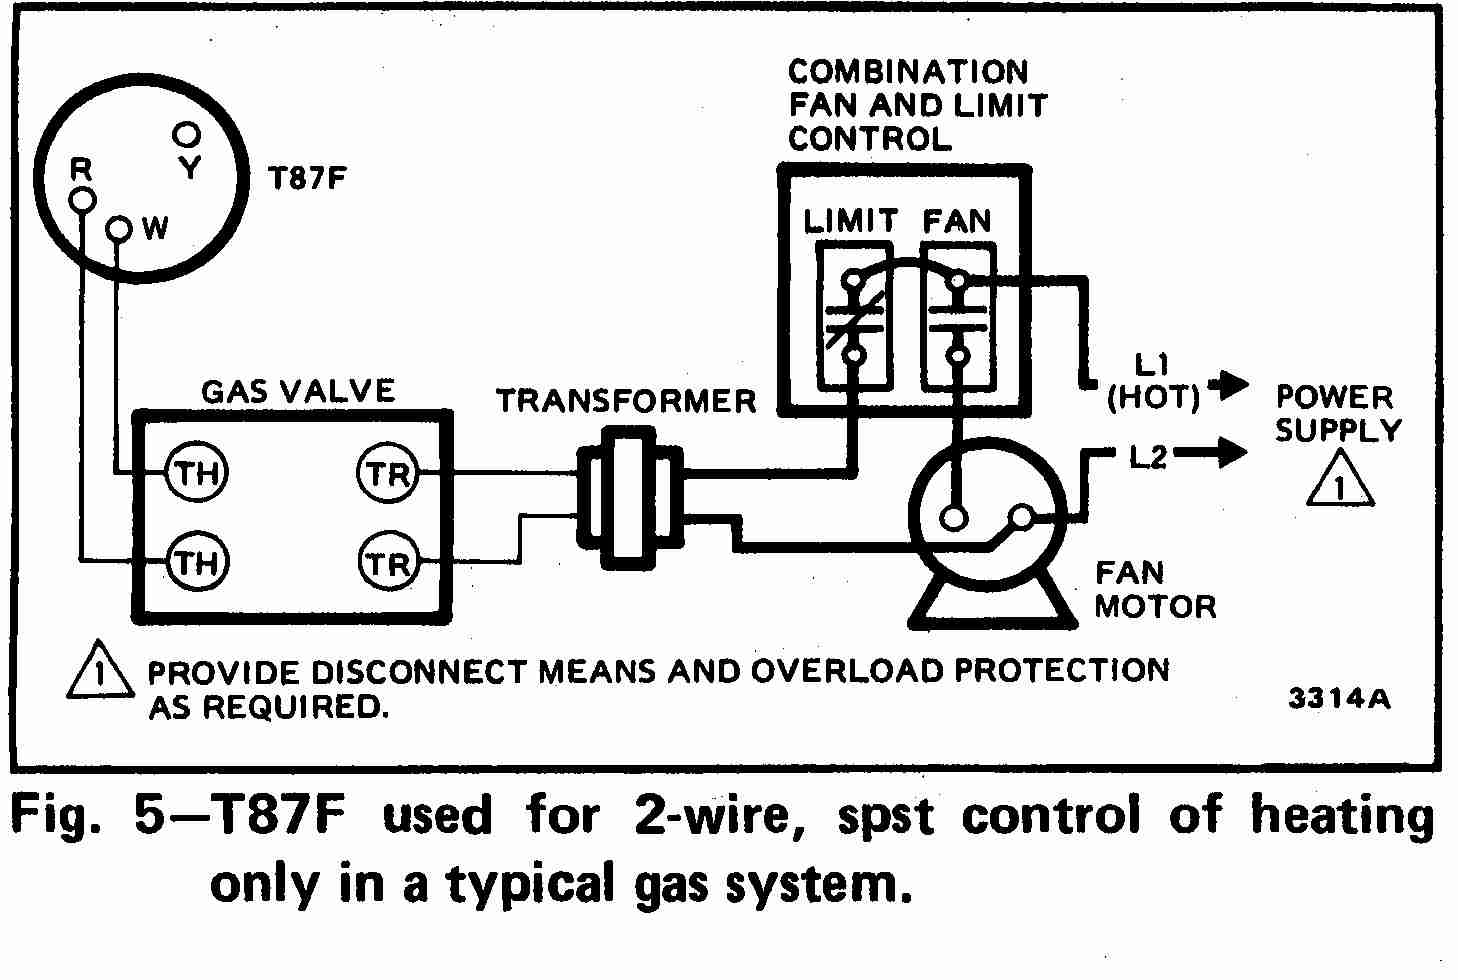 4 Wire Wiring Diagram For Honeywell Digital Thermostat also Bmw E46 Bluetooth Wiring Diagram likewise Disposal Wiring Diagram moreover Thermostat Diagrams moreover Honeywell Thermostat Wiring Diagram Rth230b. on honeywell mercury thermostat wiring